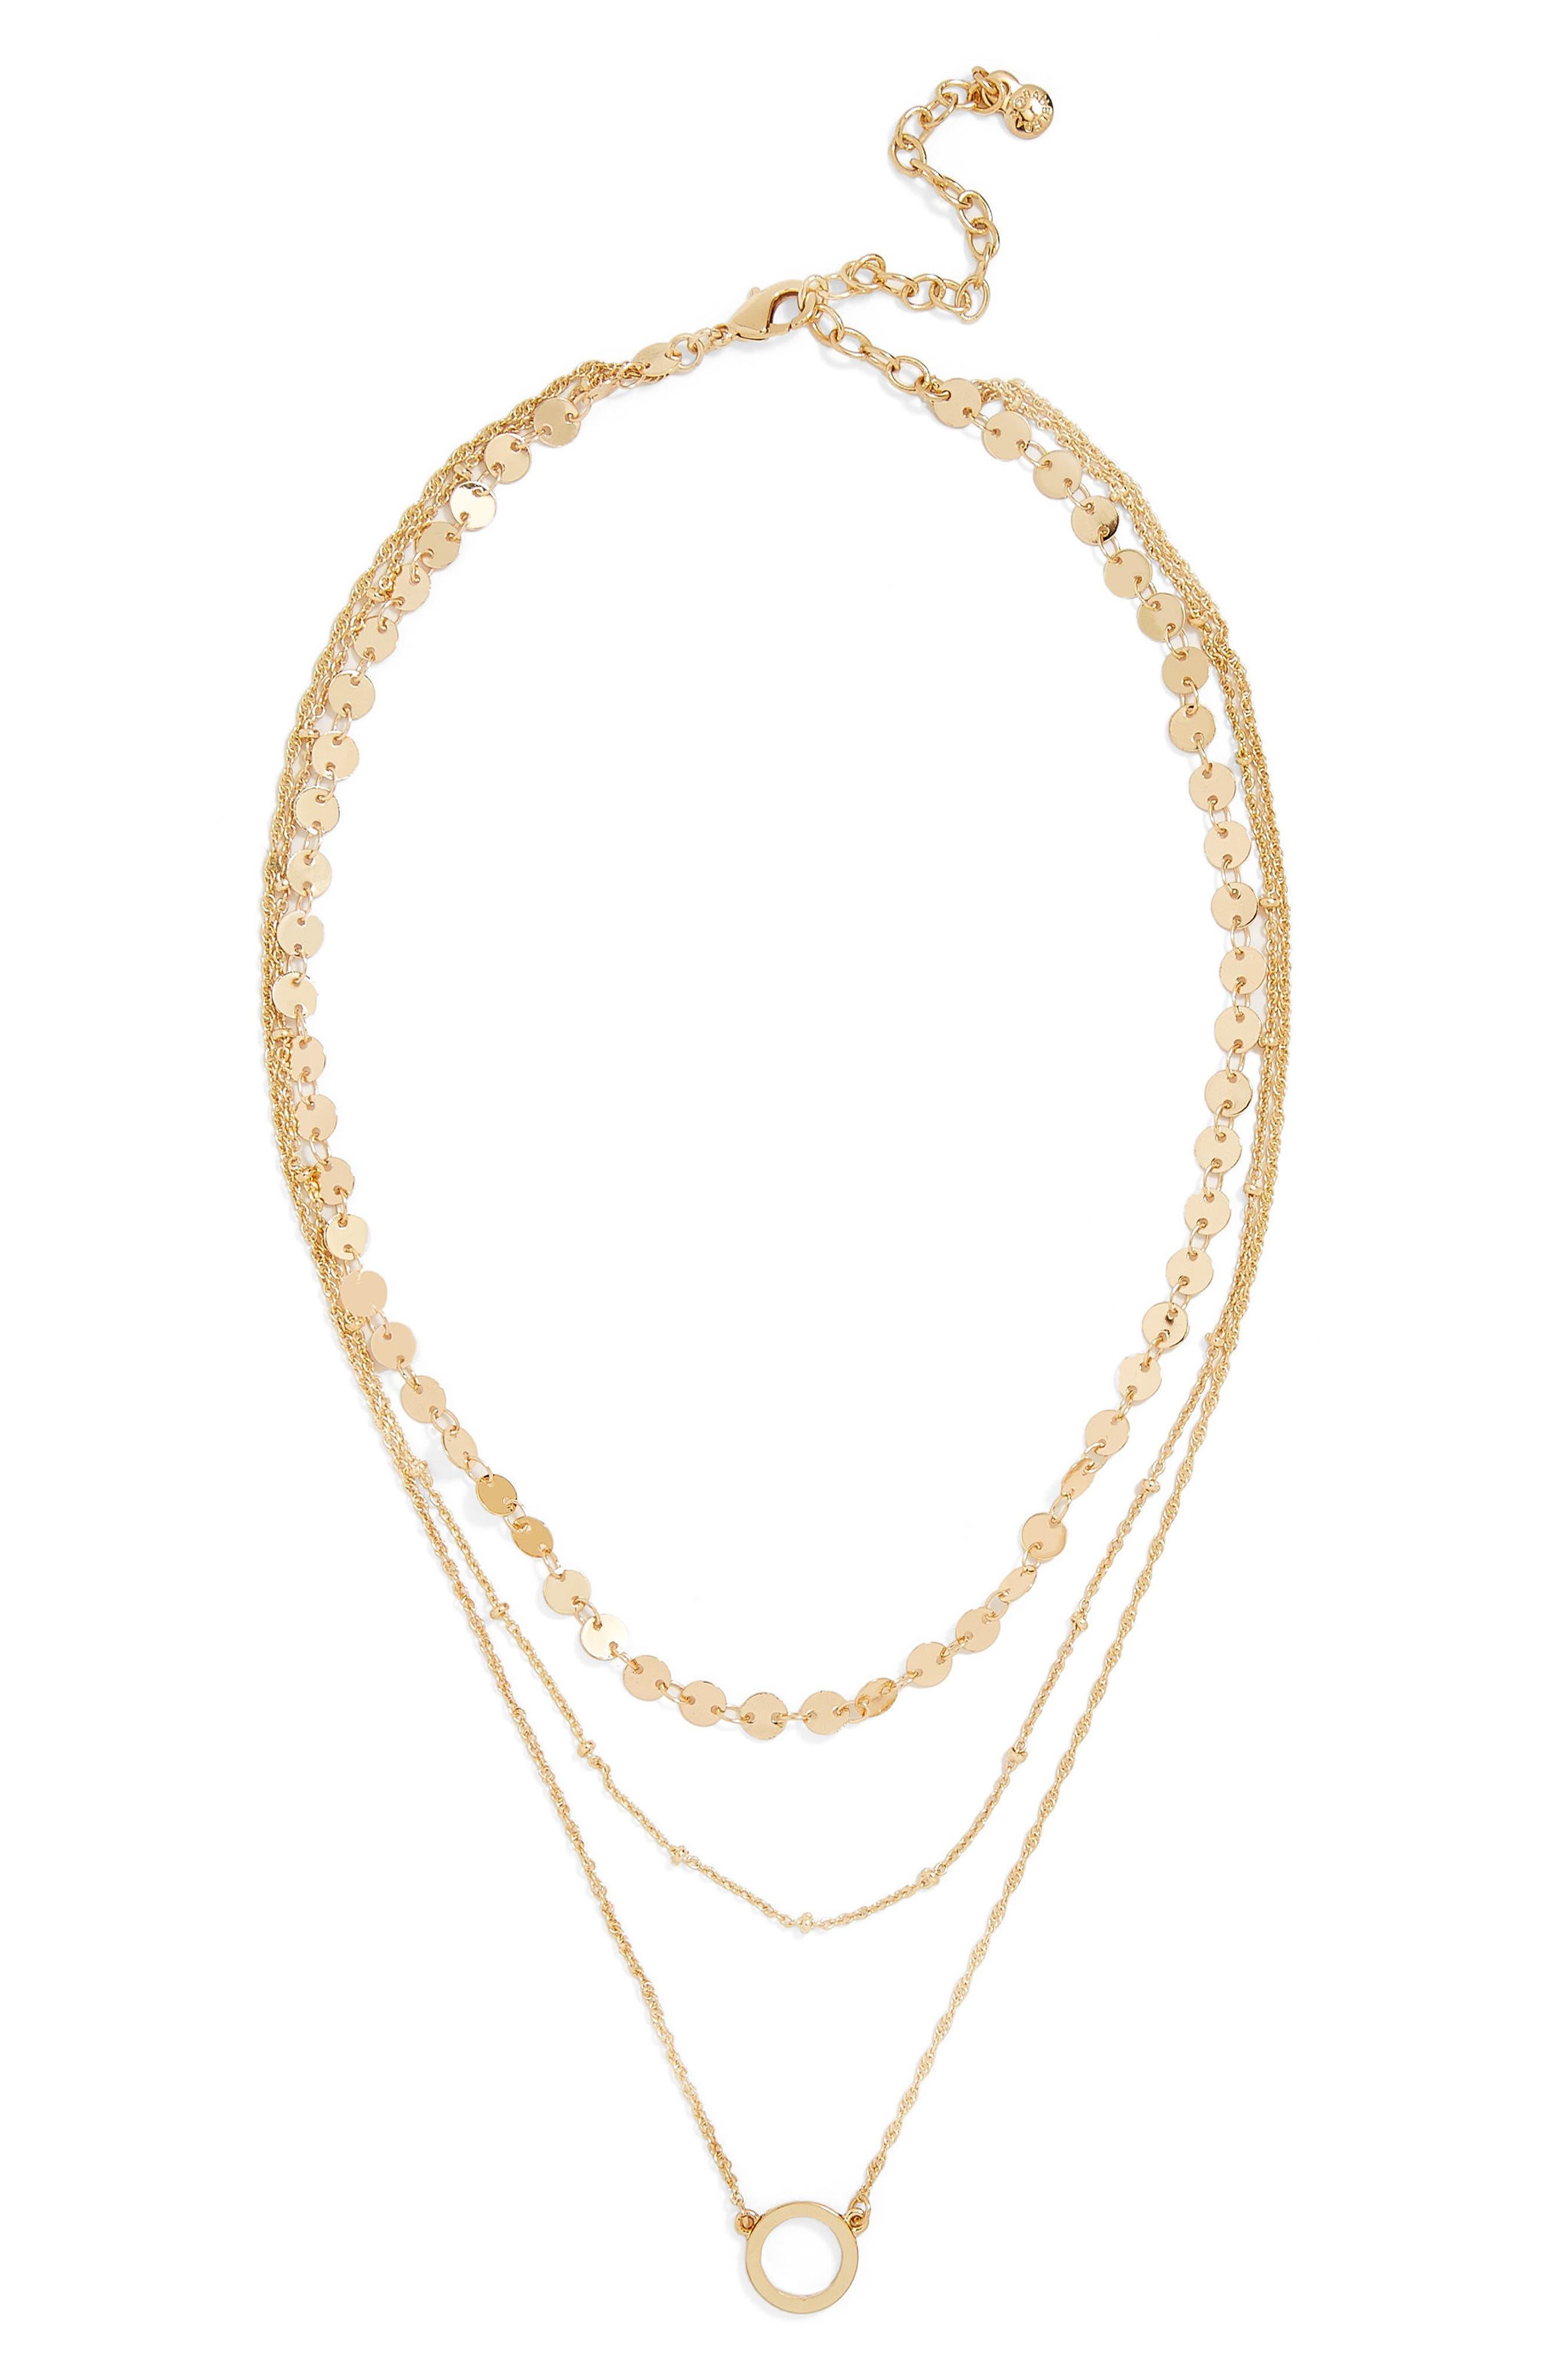 Adrielle Triple Strand Necklace,                             Main thumbnail 1, color,                             Gold